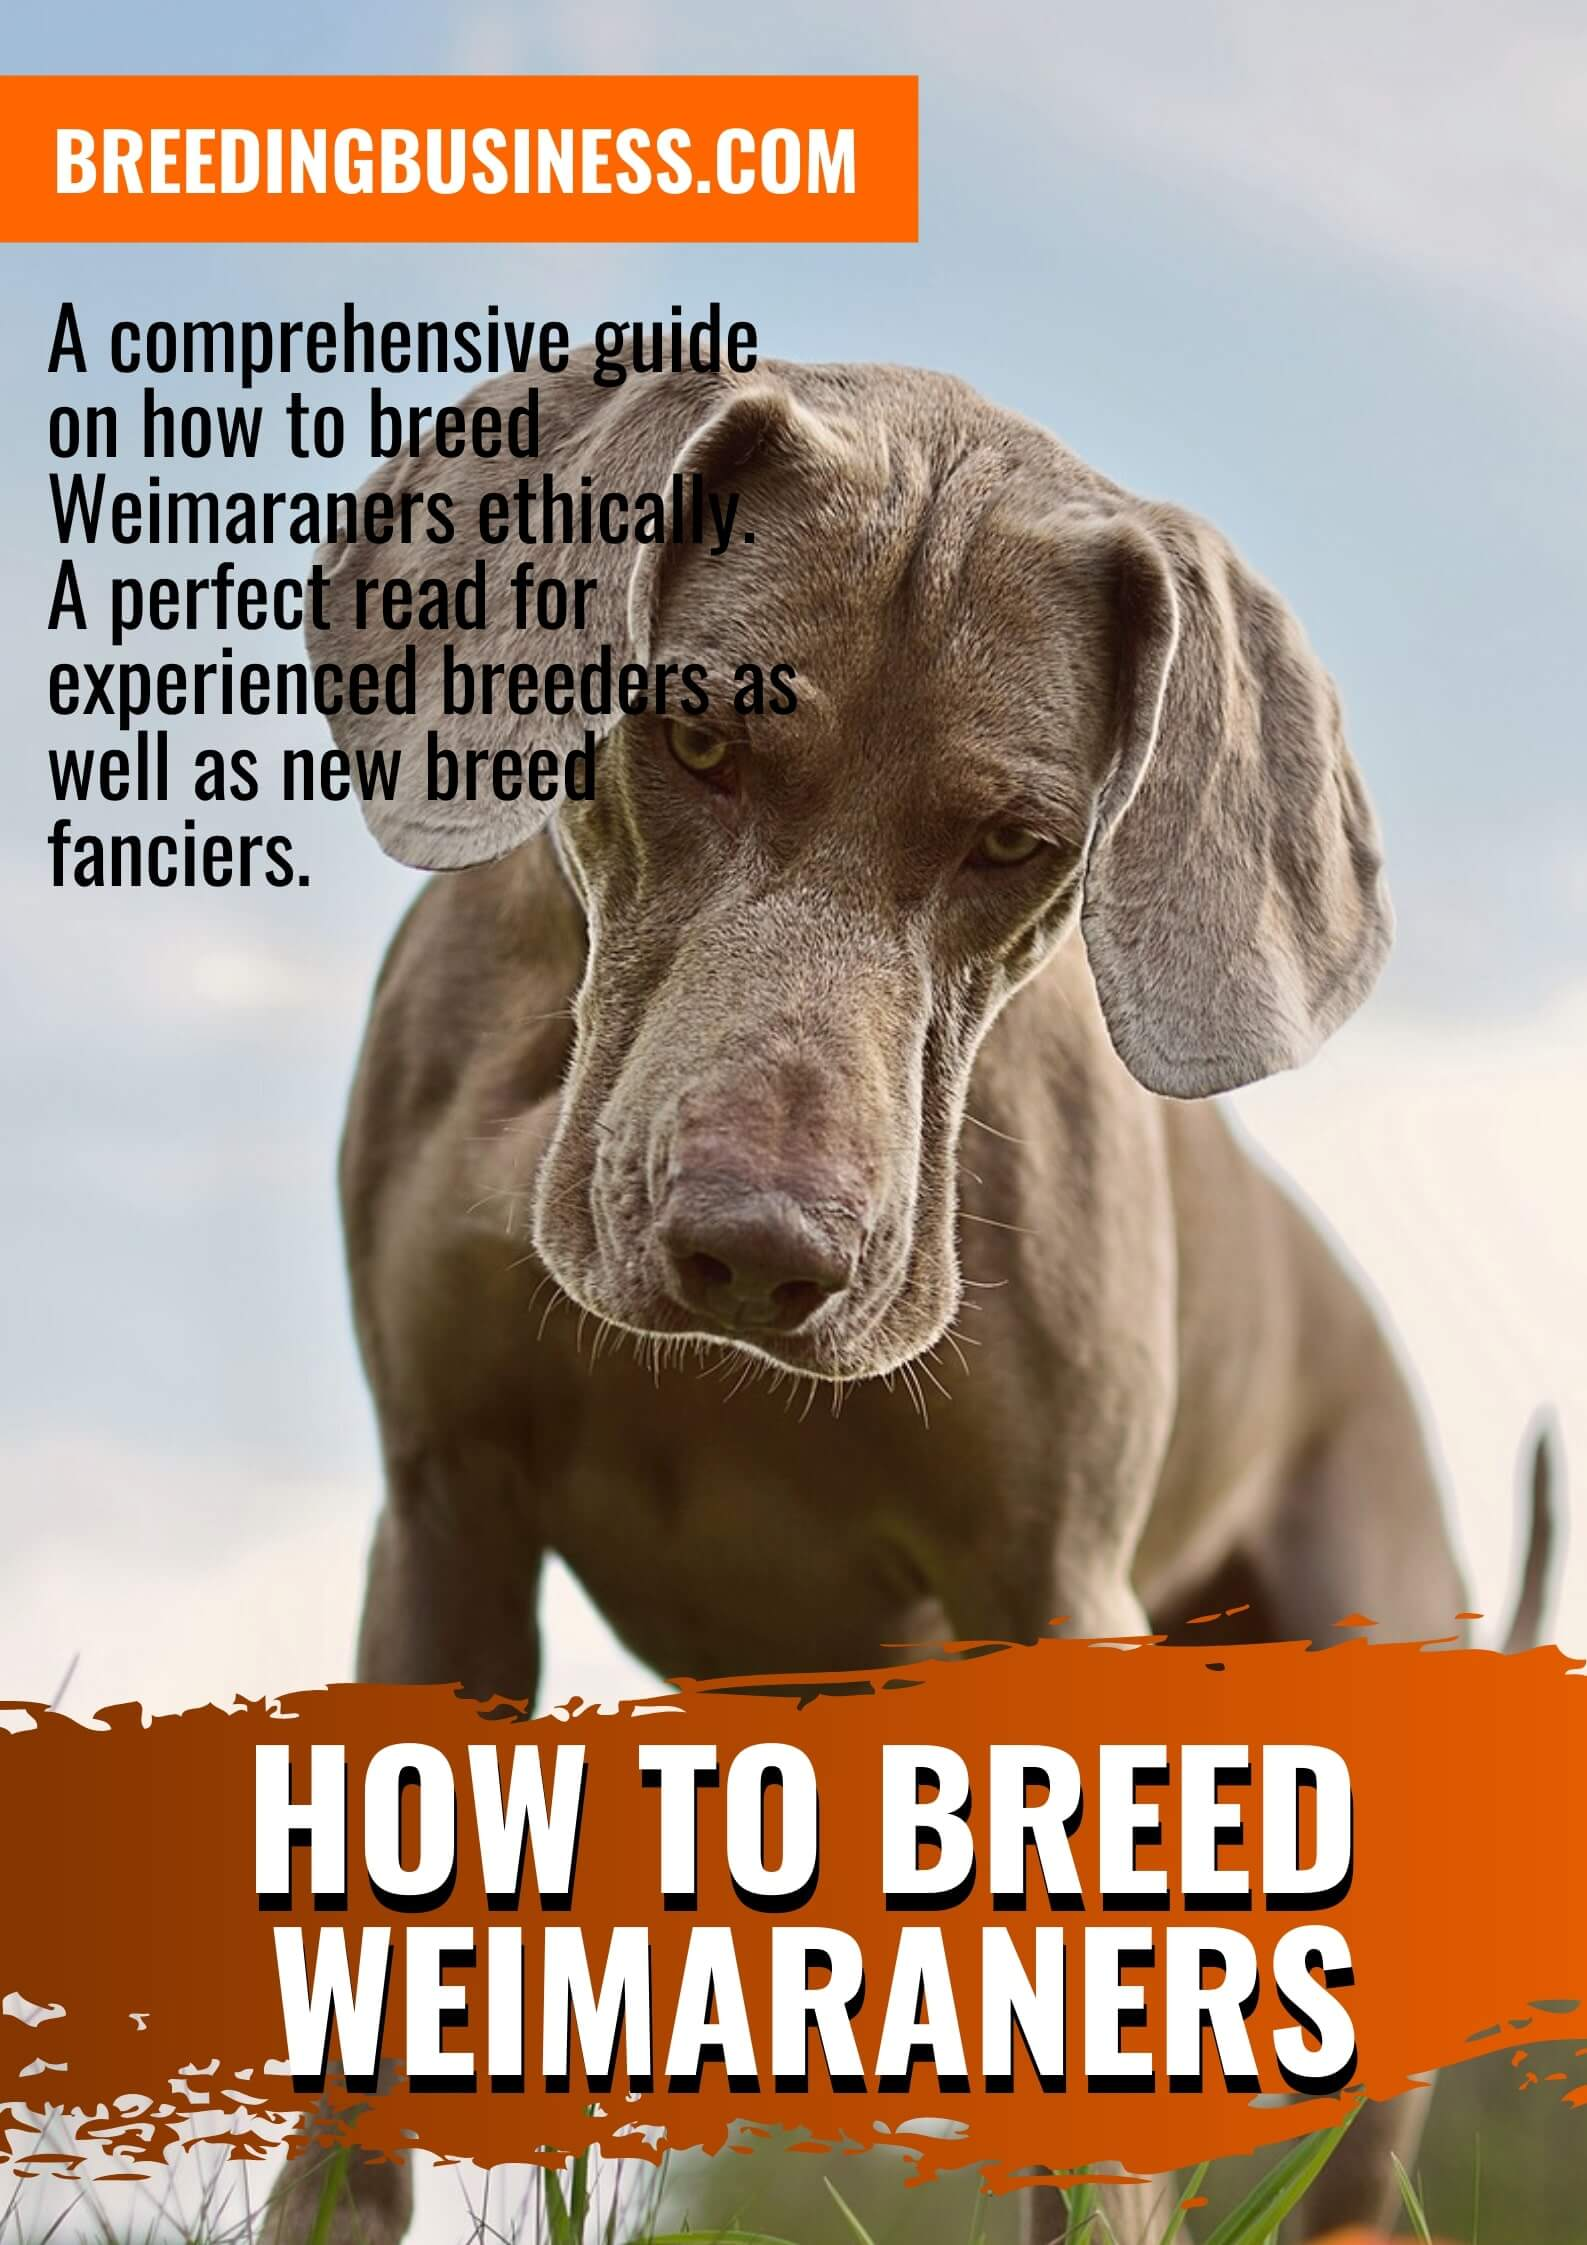 How To Breed Weimaraners